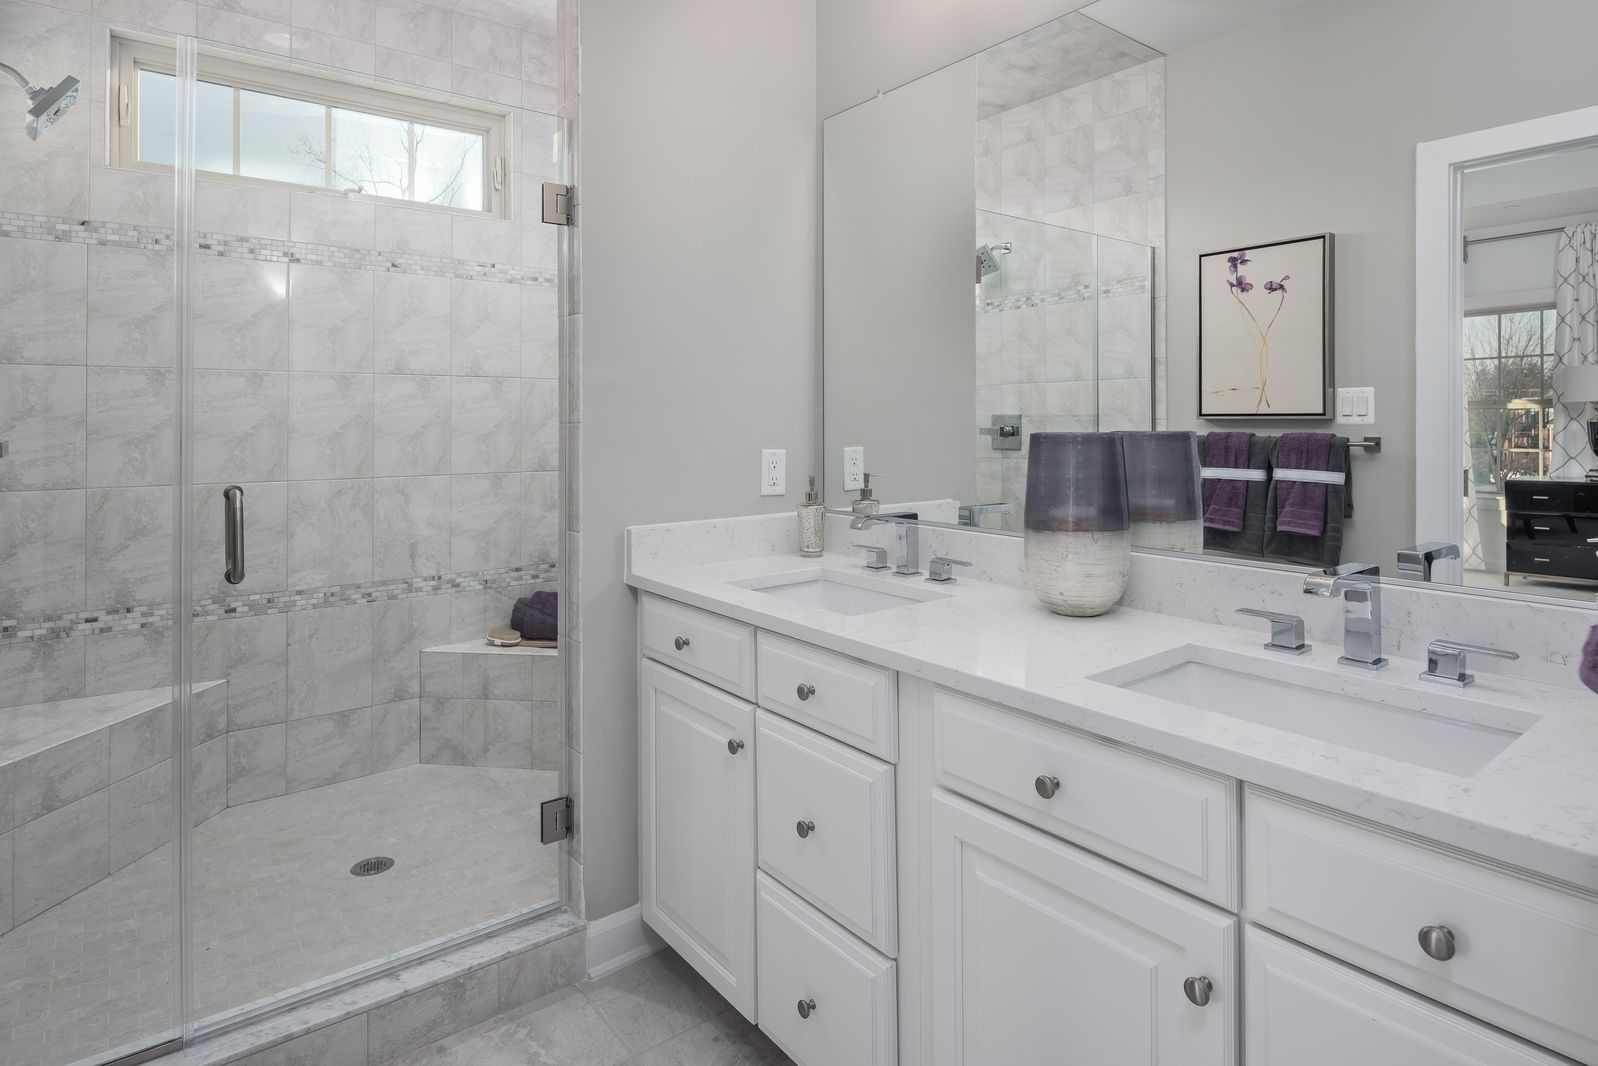 Bathroom featured in the Andrew Carnegie By NVHomes in Baltimore, MD